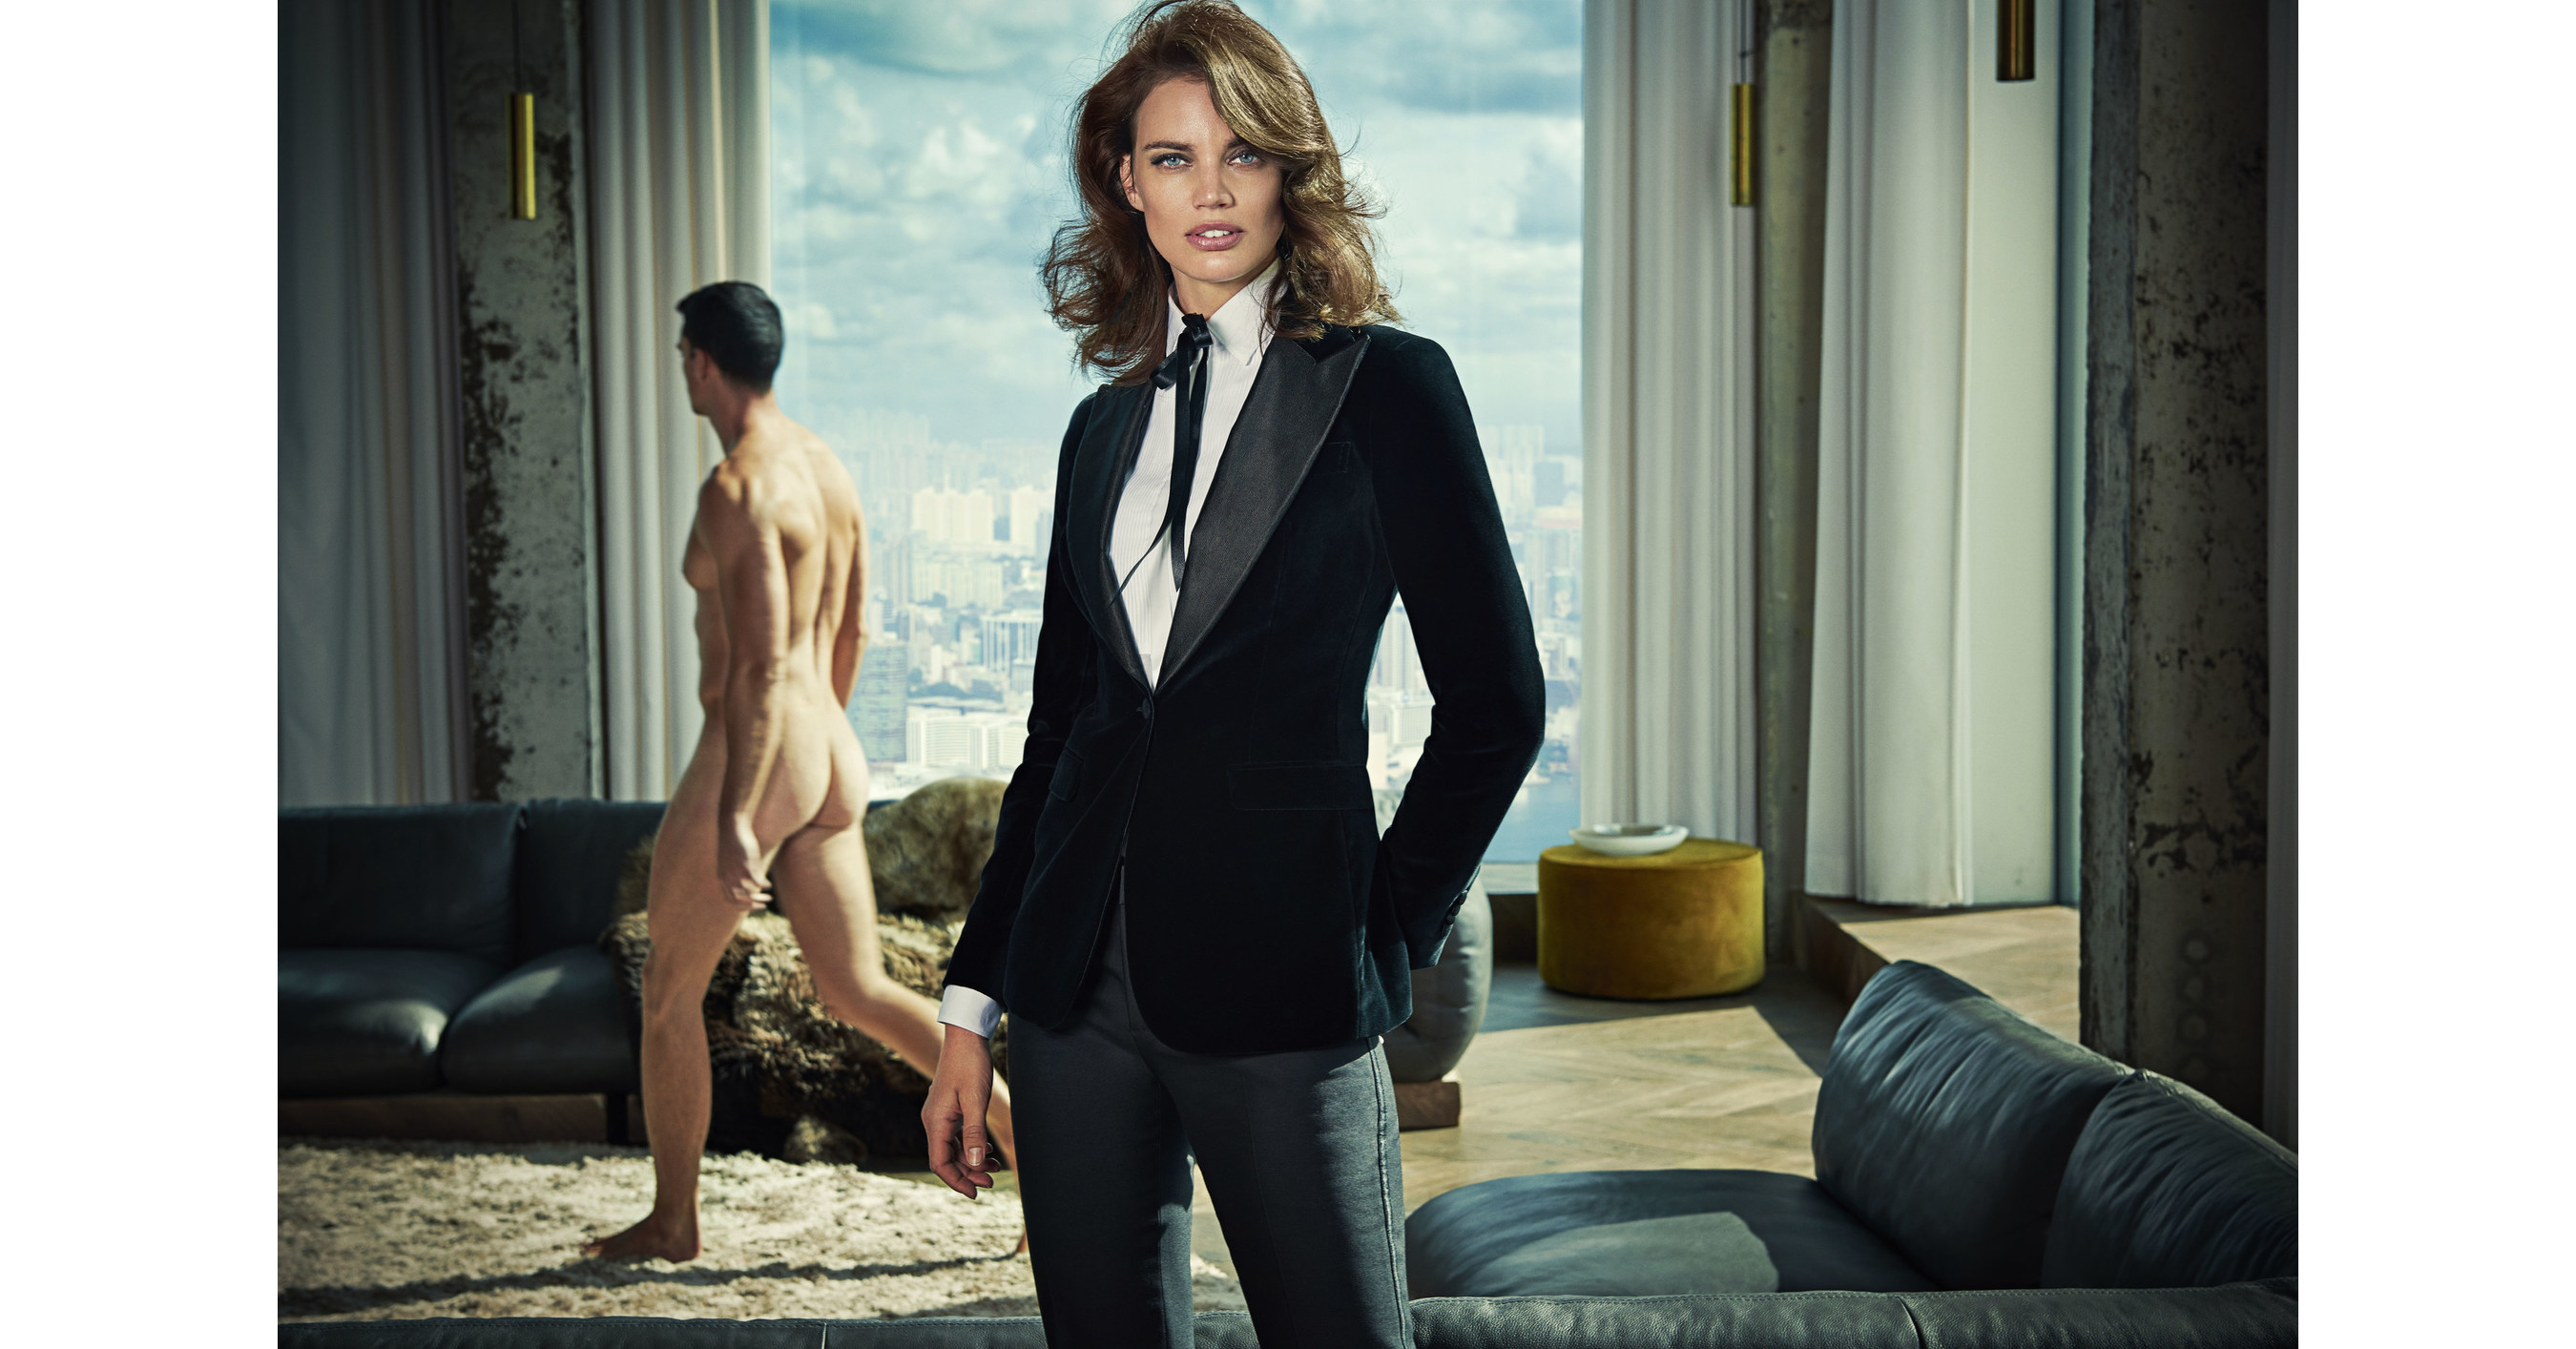 Womens suit company Suistudio leaves men naked in ads